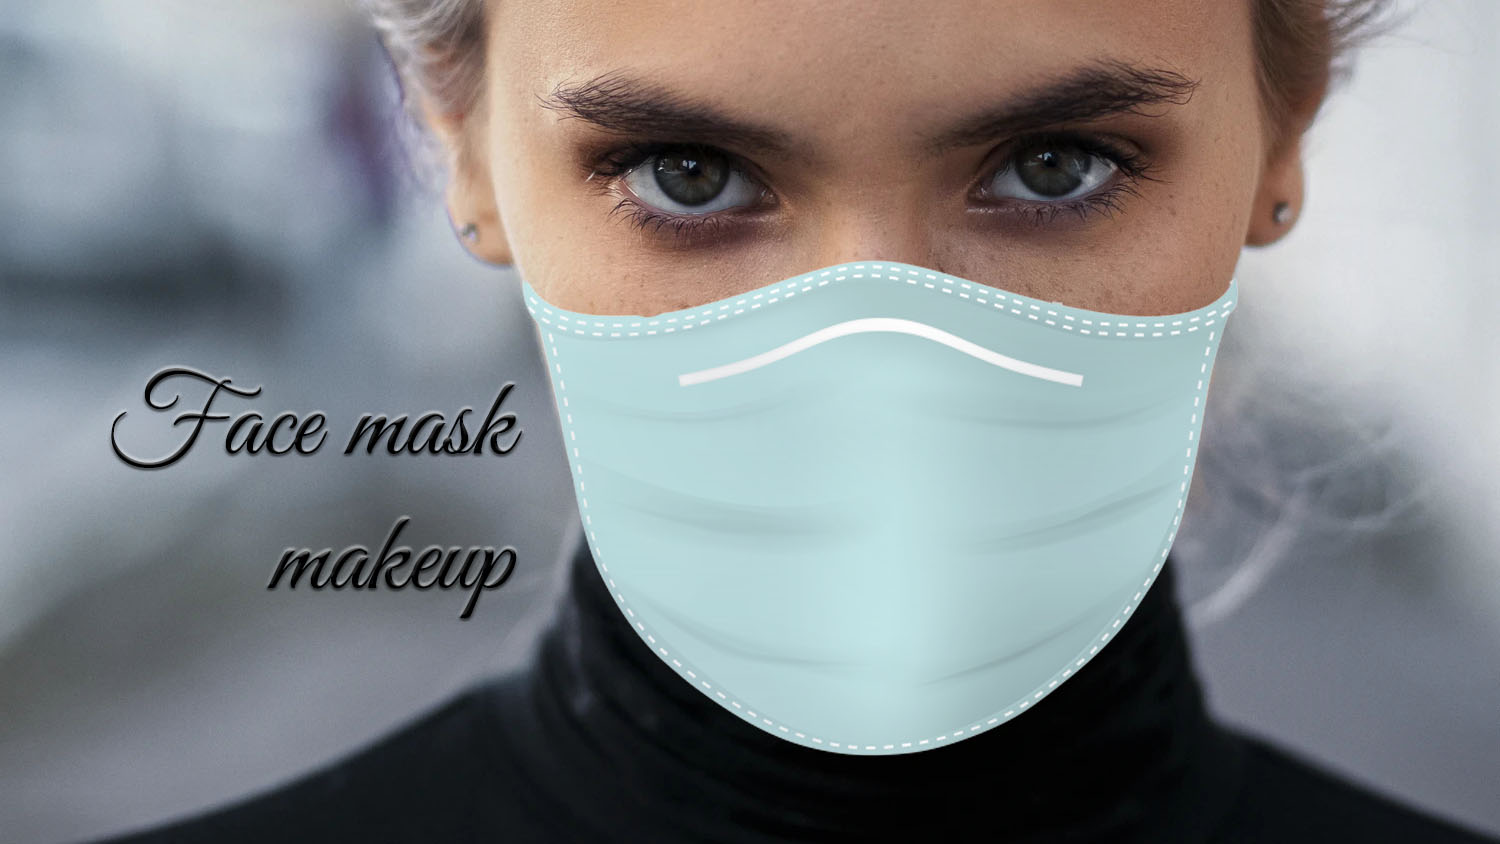 Face mask makeup tips